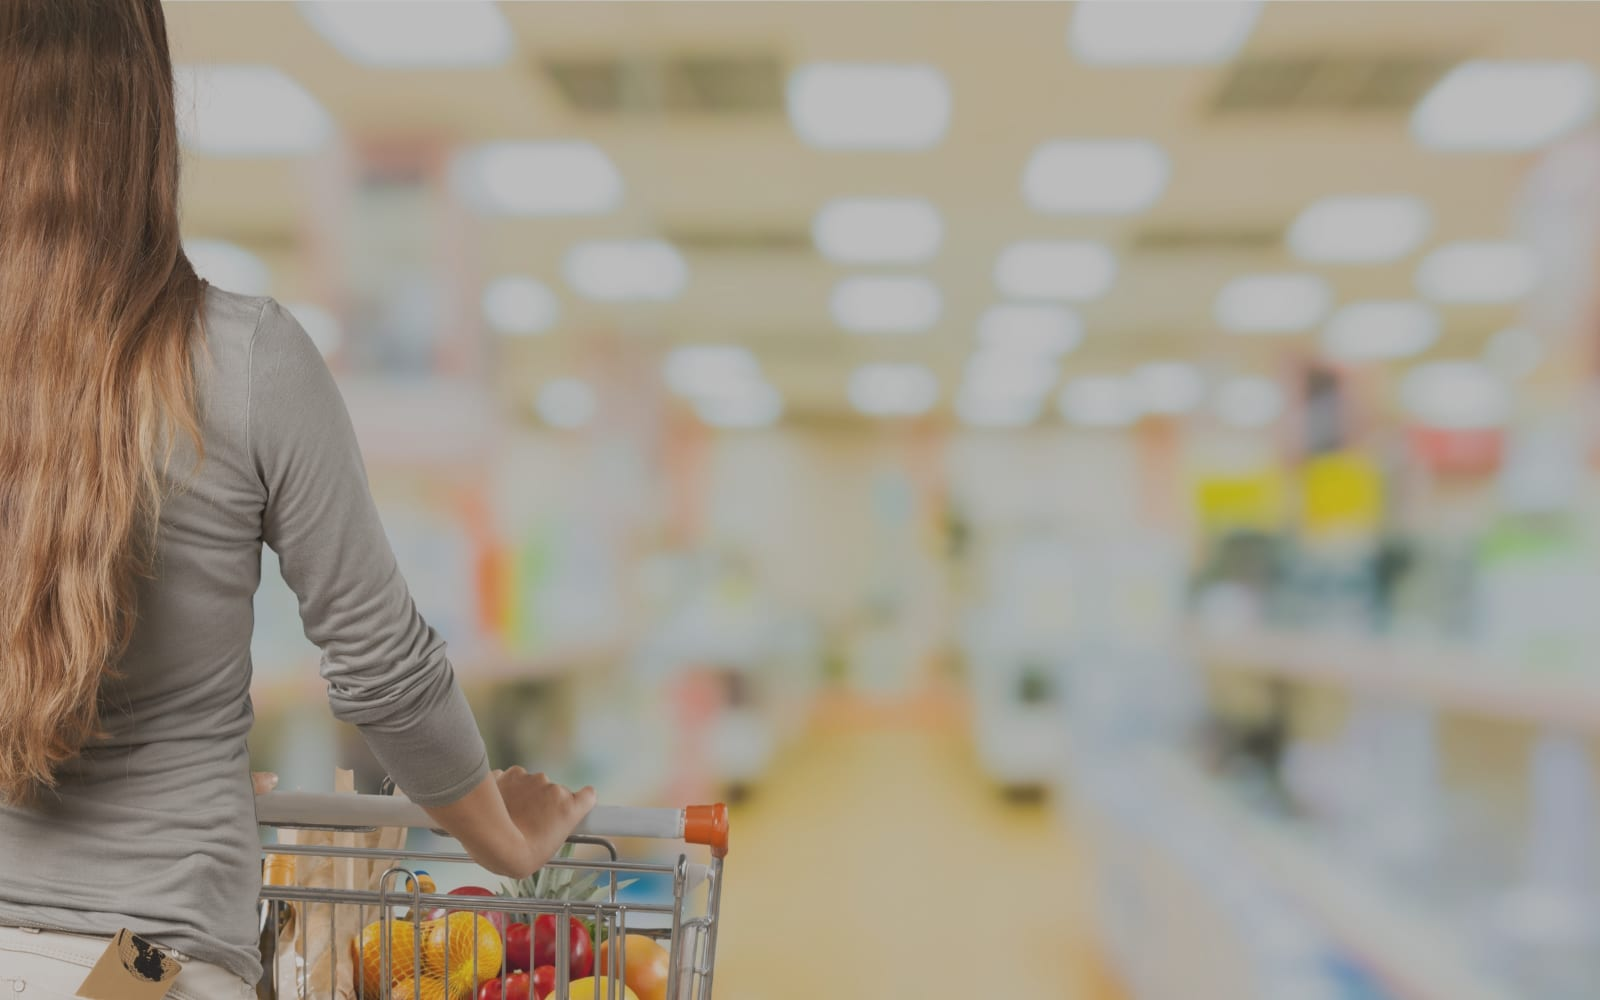 Grocery Store Stress - You're NOT Alone